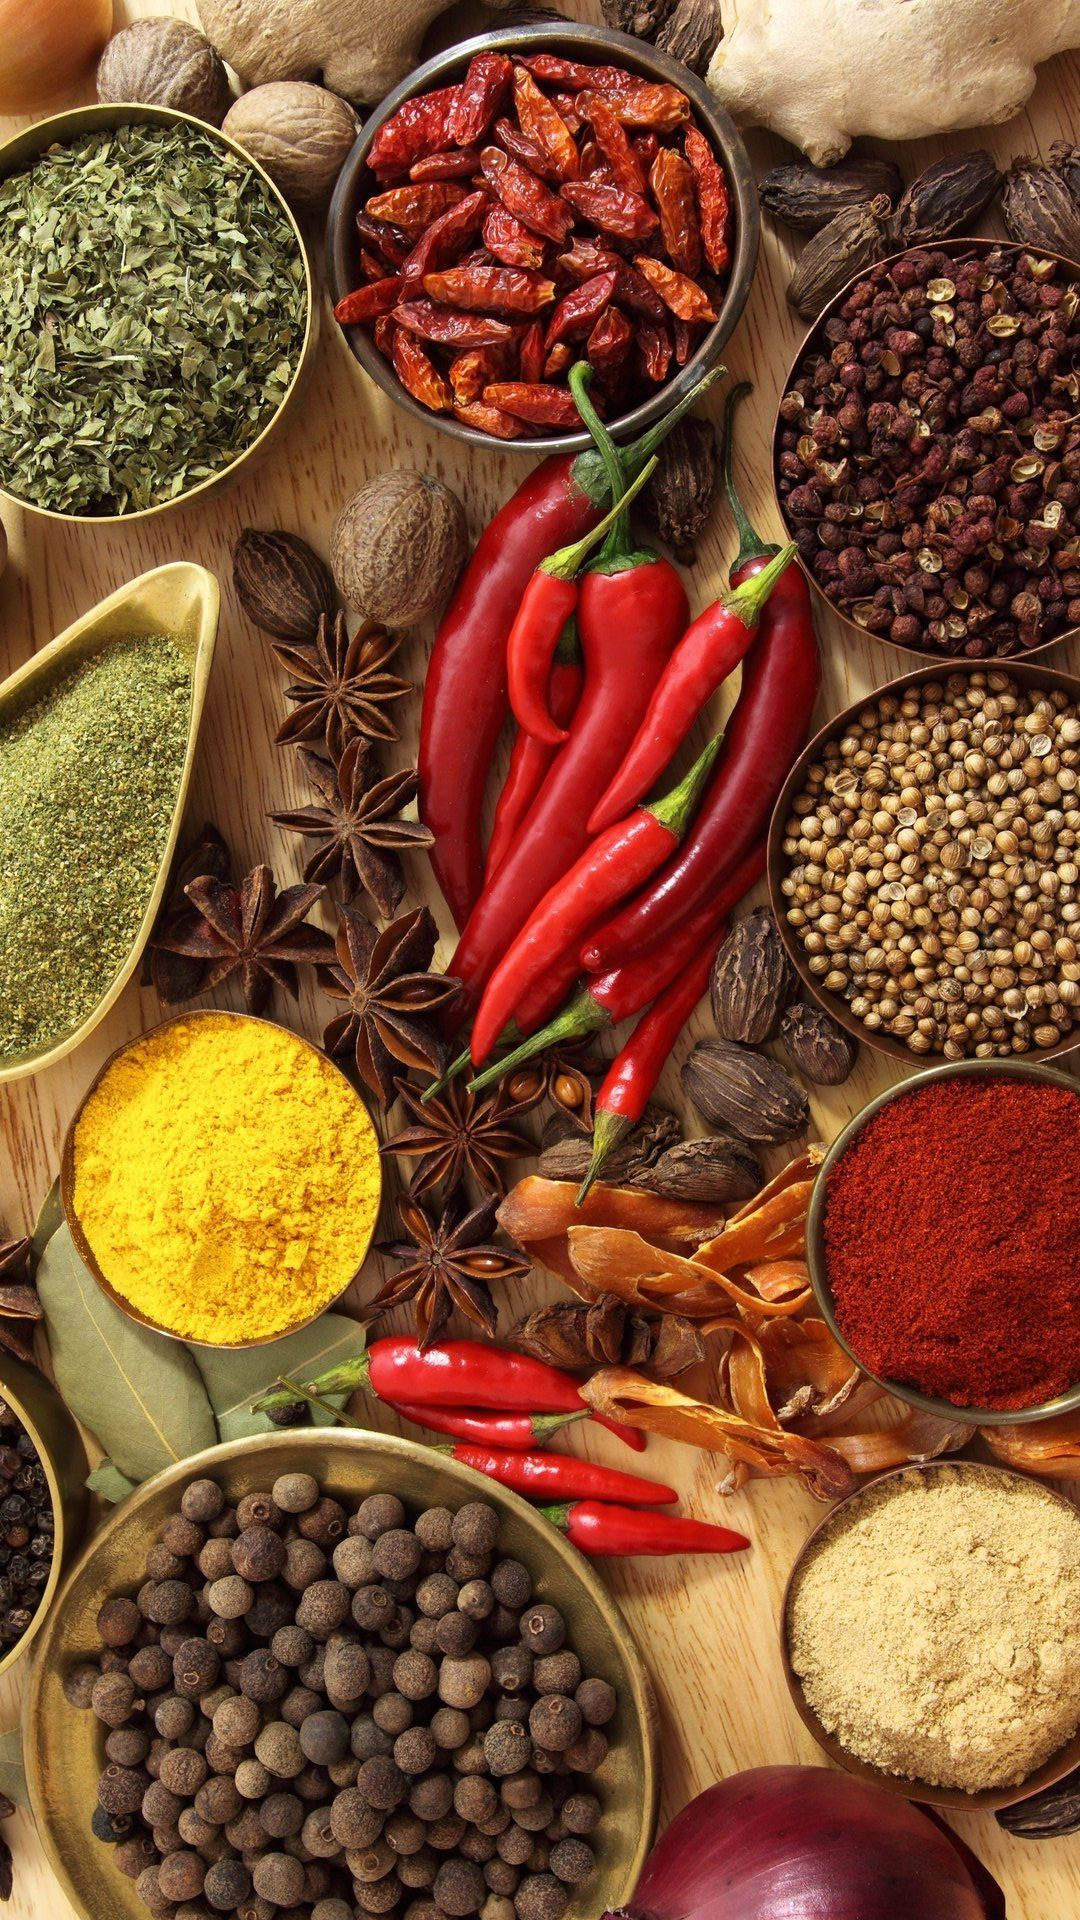 Spices Hd Wallpaper Best Iphone Wallpaper Food Wallpaper Homemade Spices Spices Photography